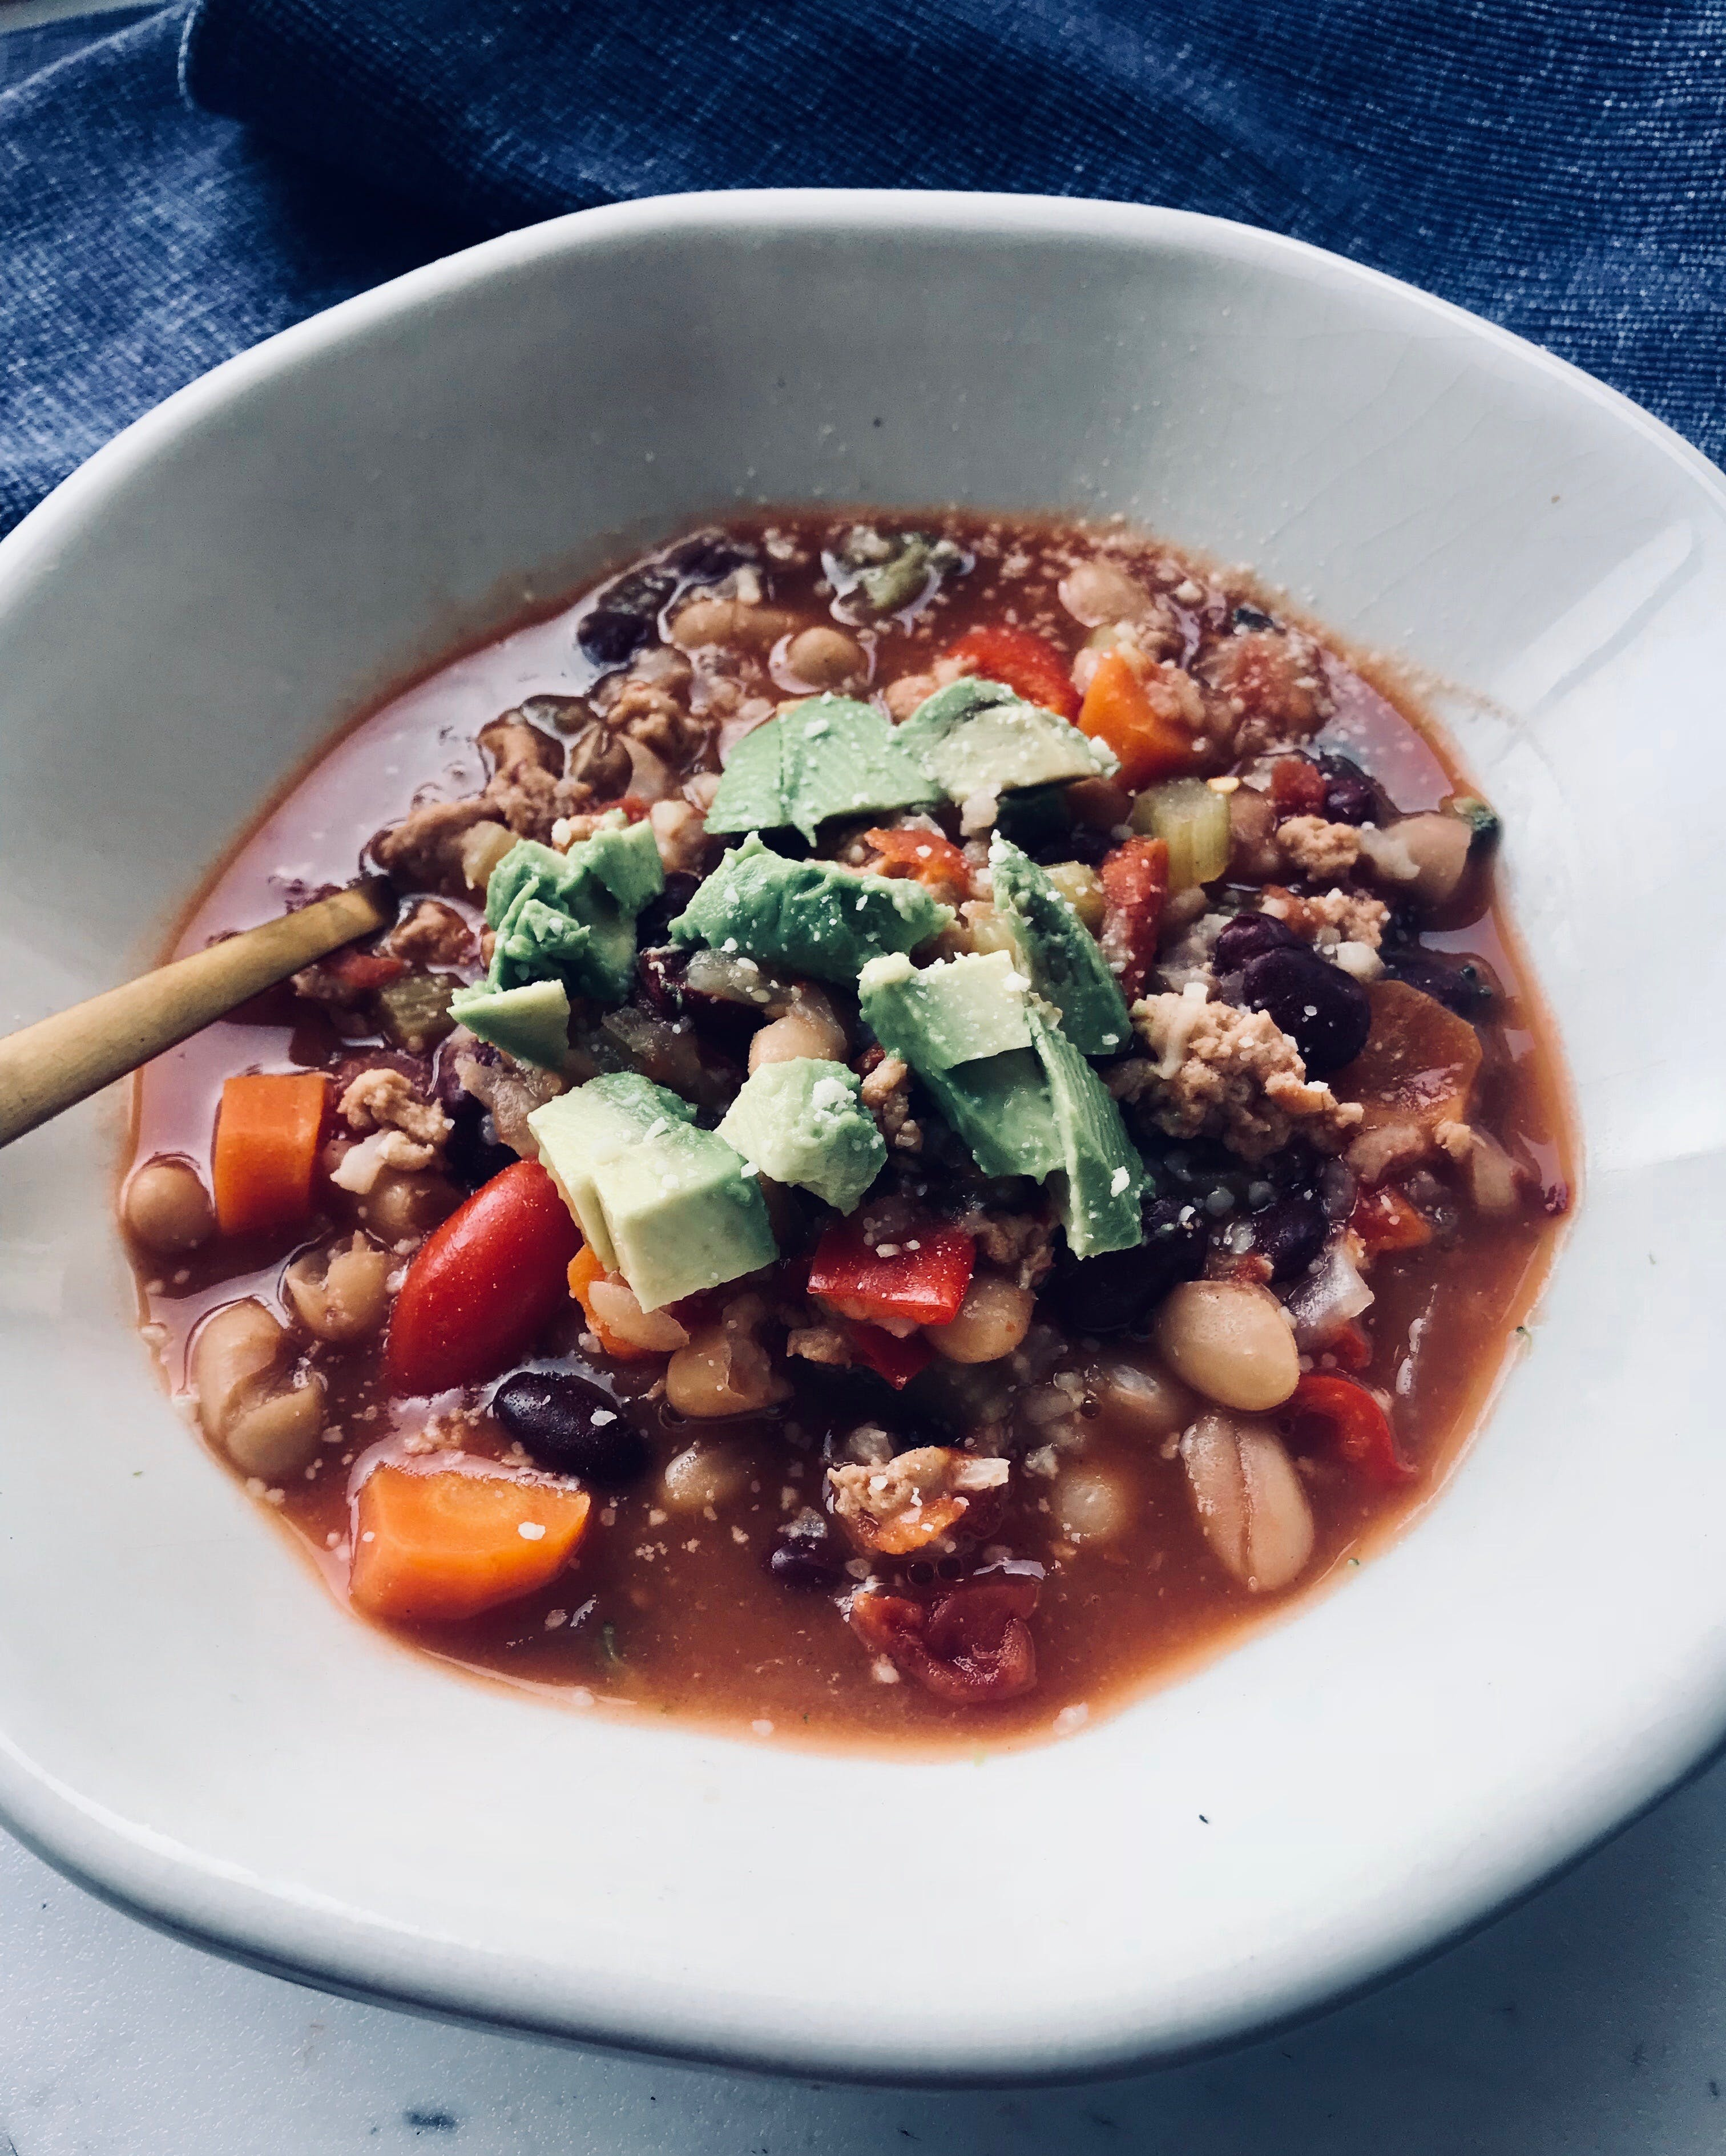 Free stock photo of #chili, #dialnutrition_rd, #healthydish